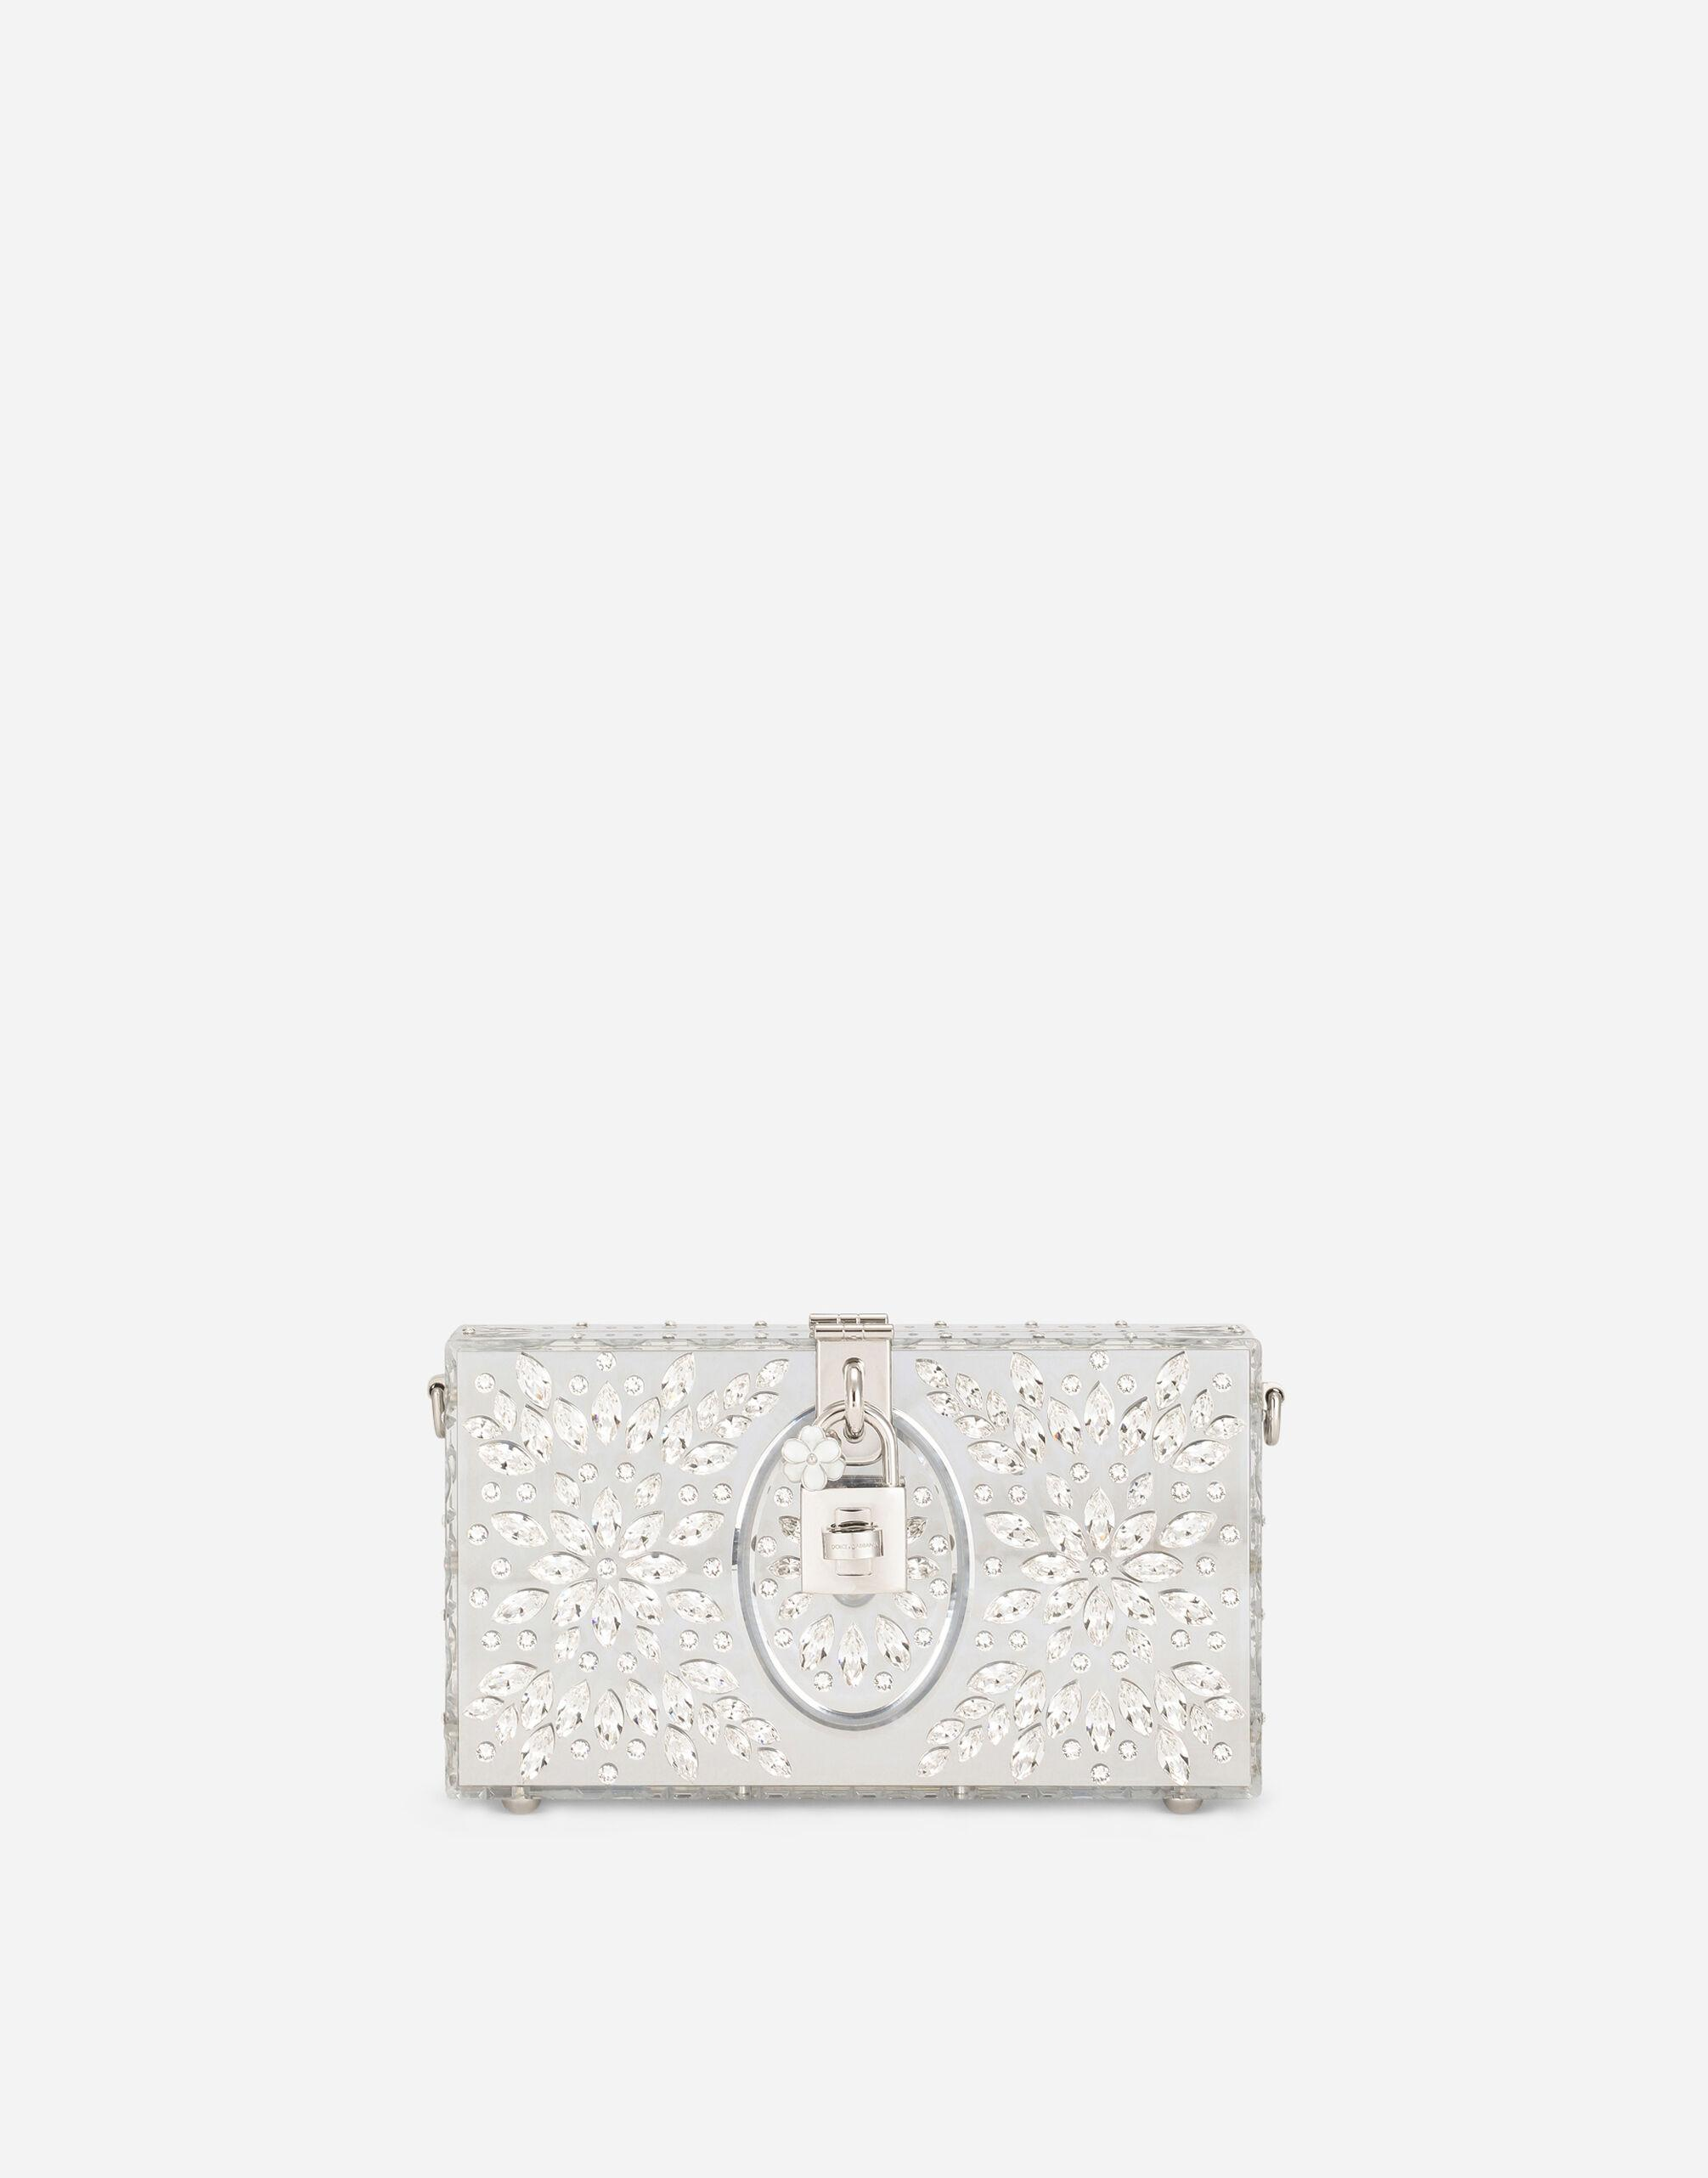 Acrylic glass and lace Dolce Box clutch